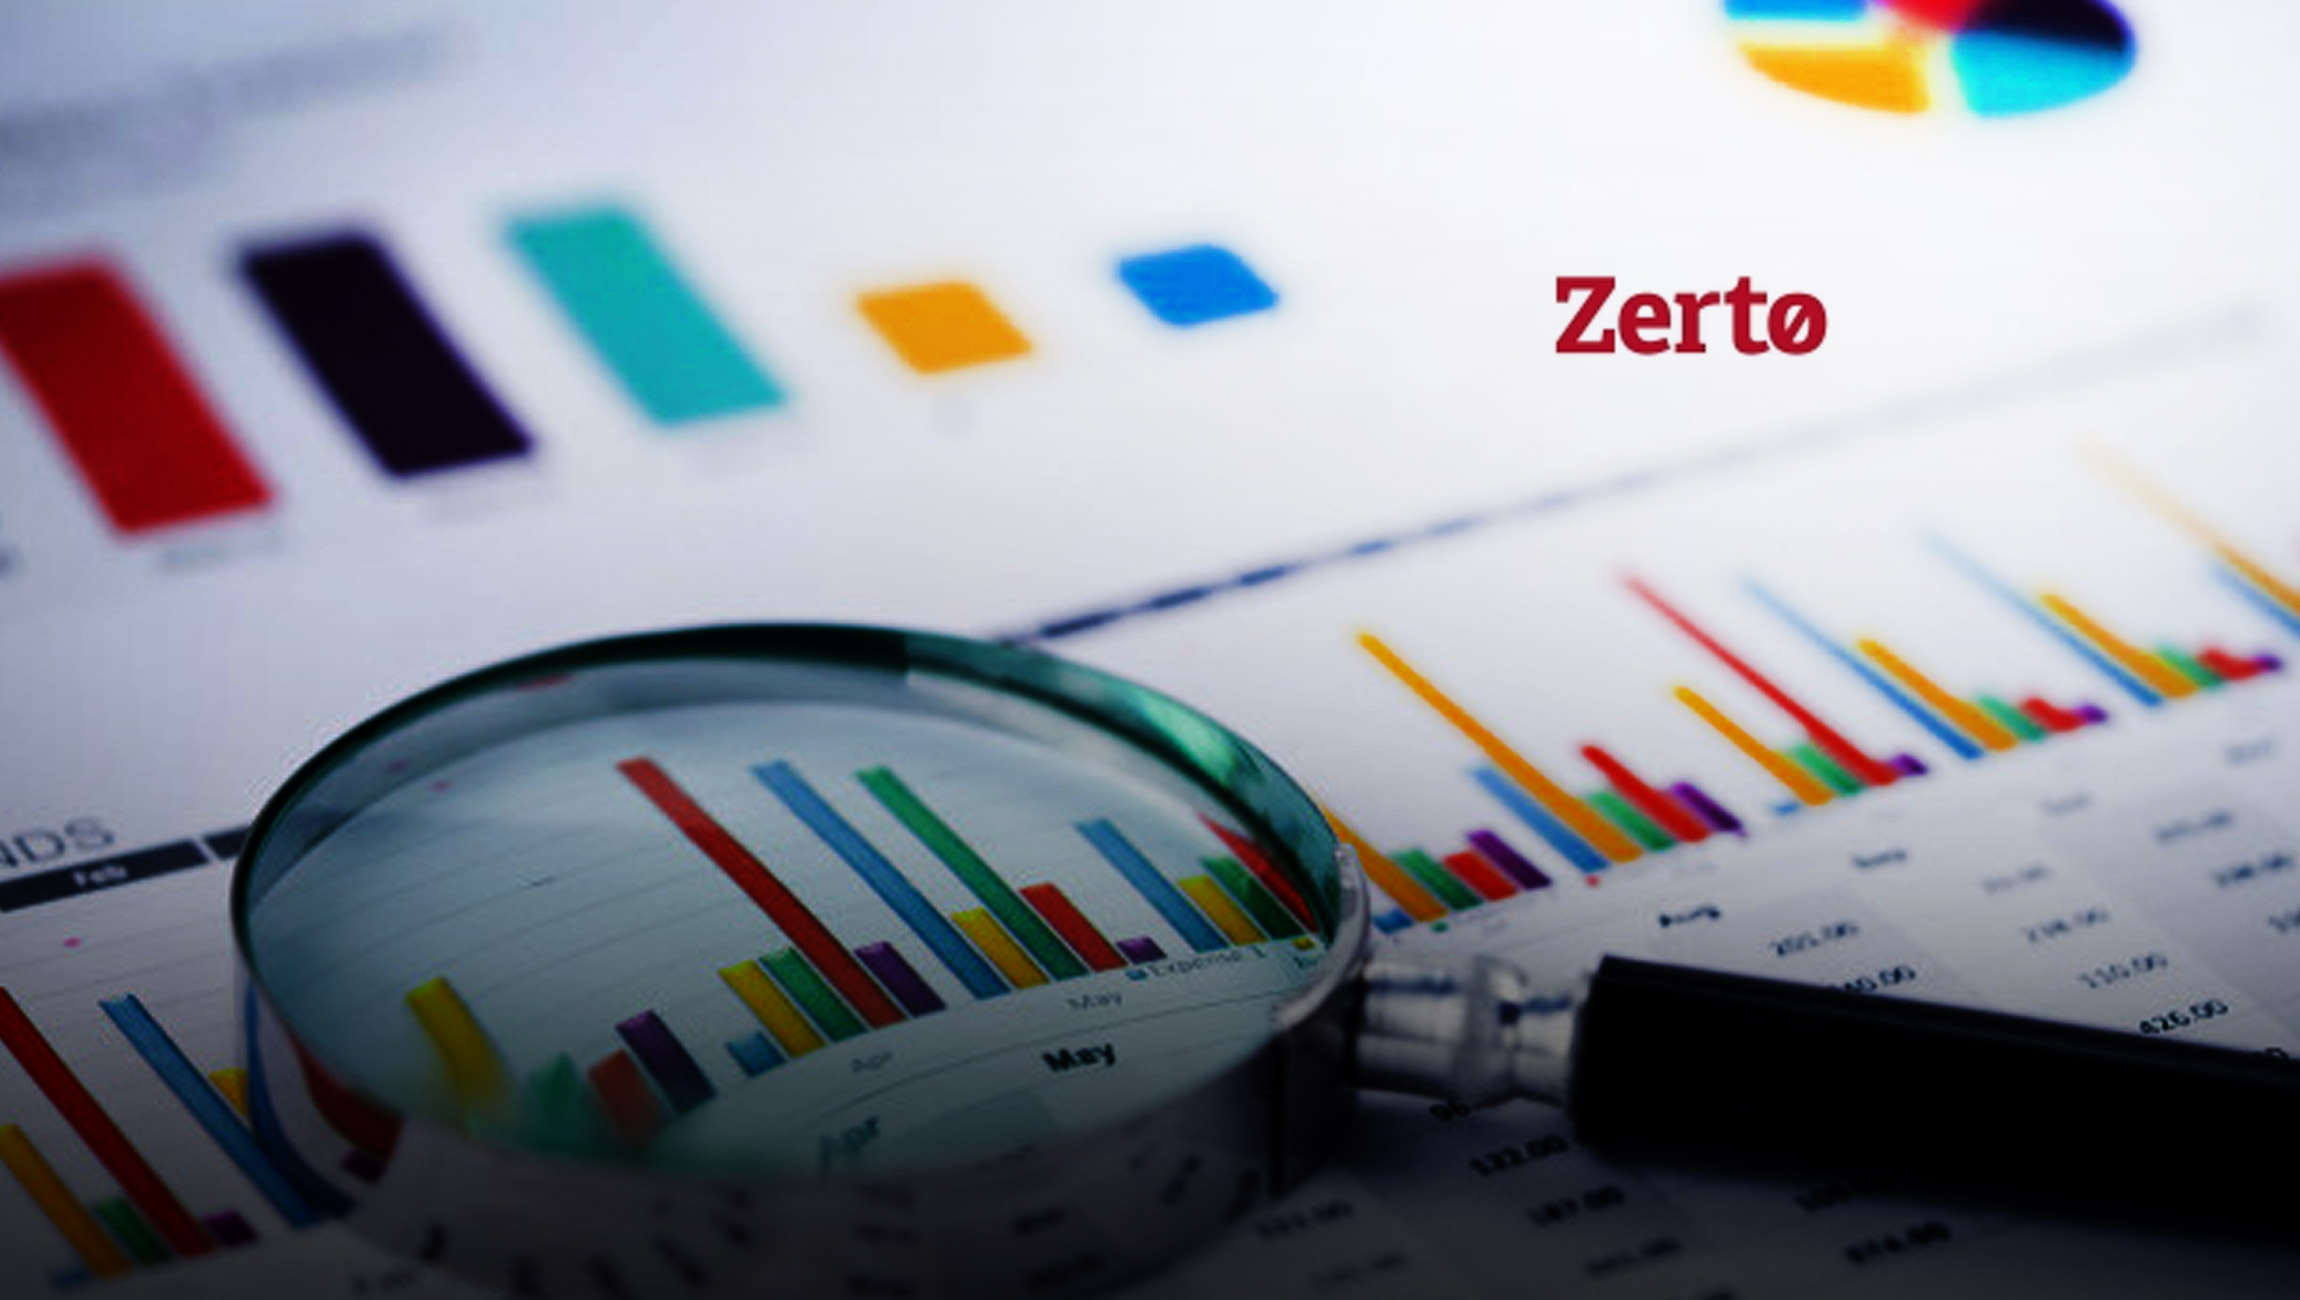 Zerto Enhances Alliance Partner Program to Deliver Accelerated Channel Growth